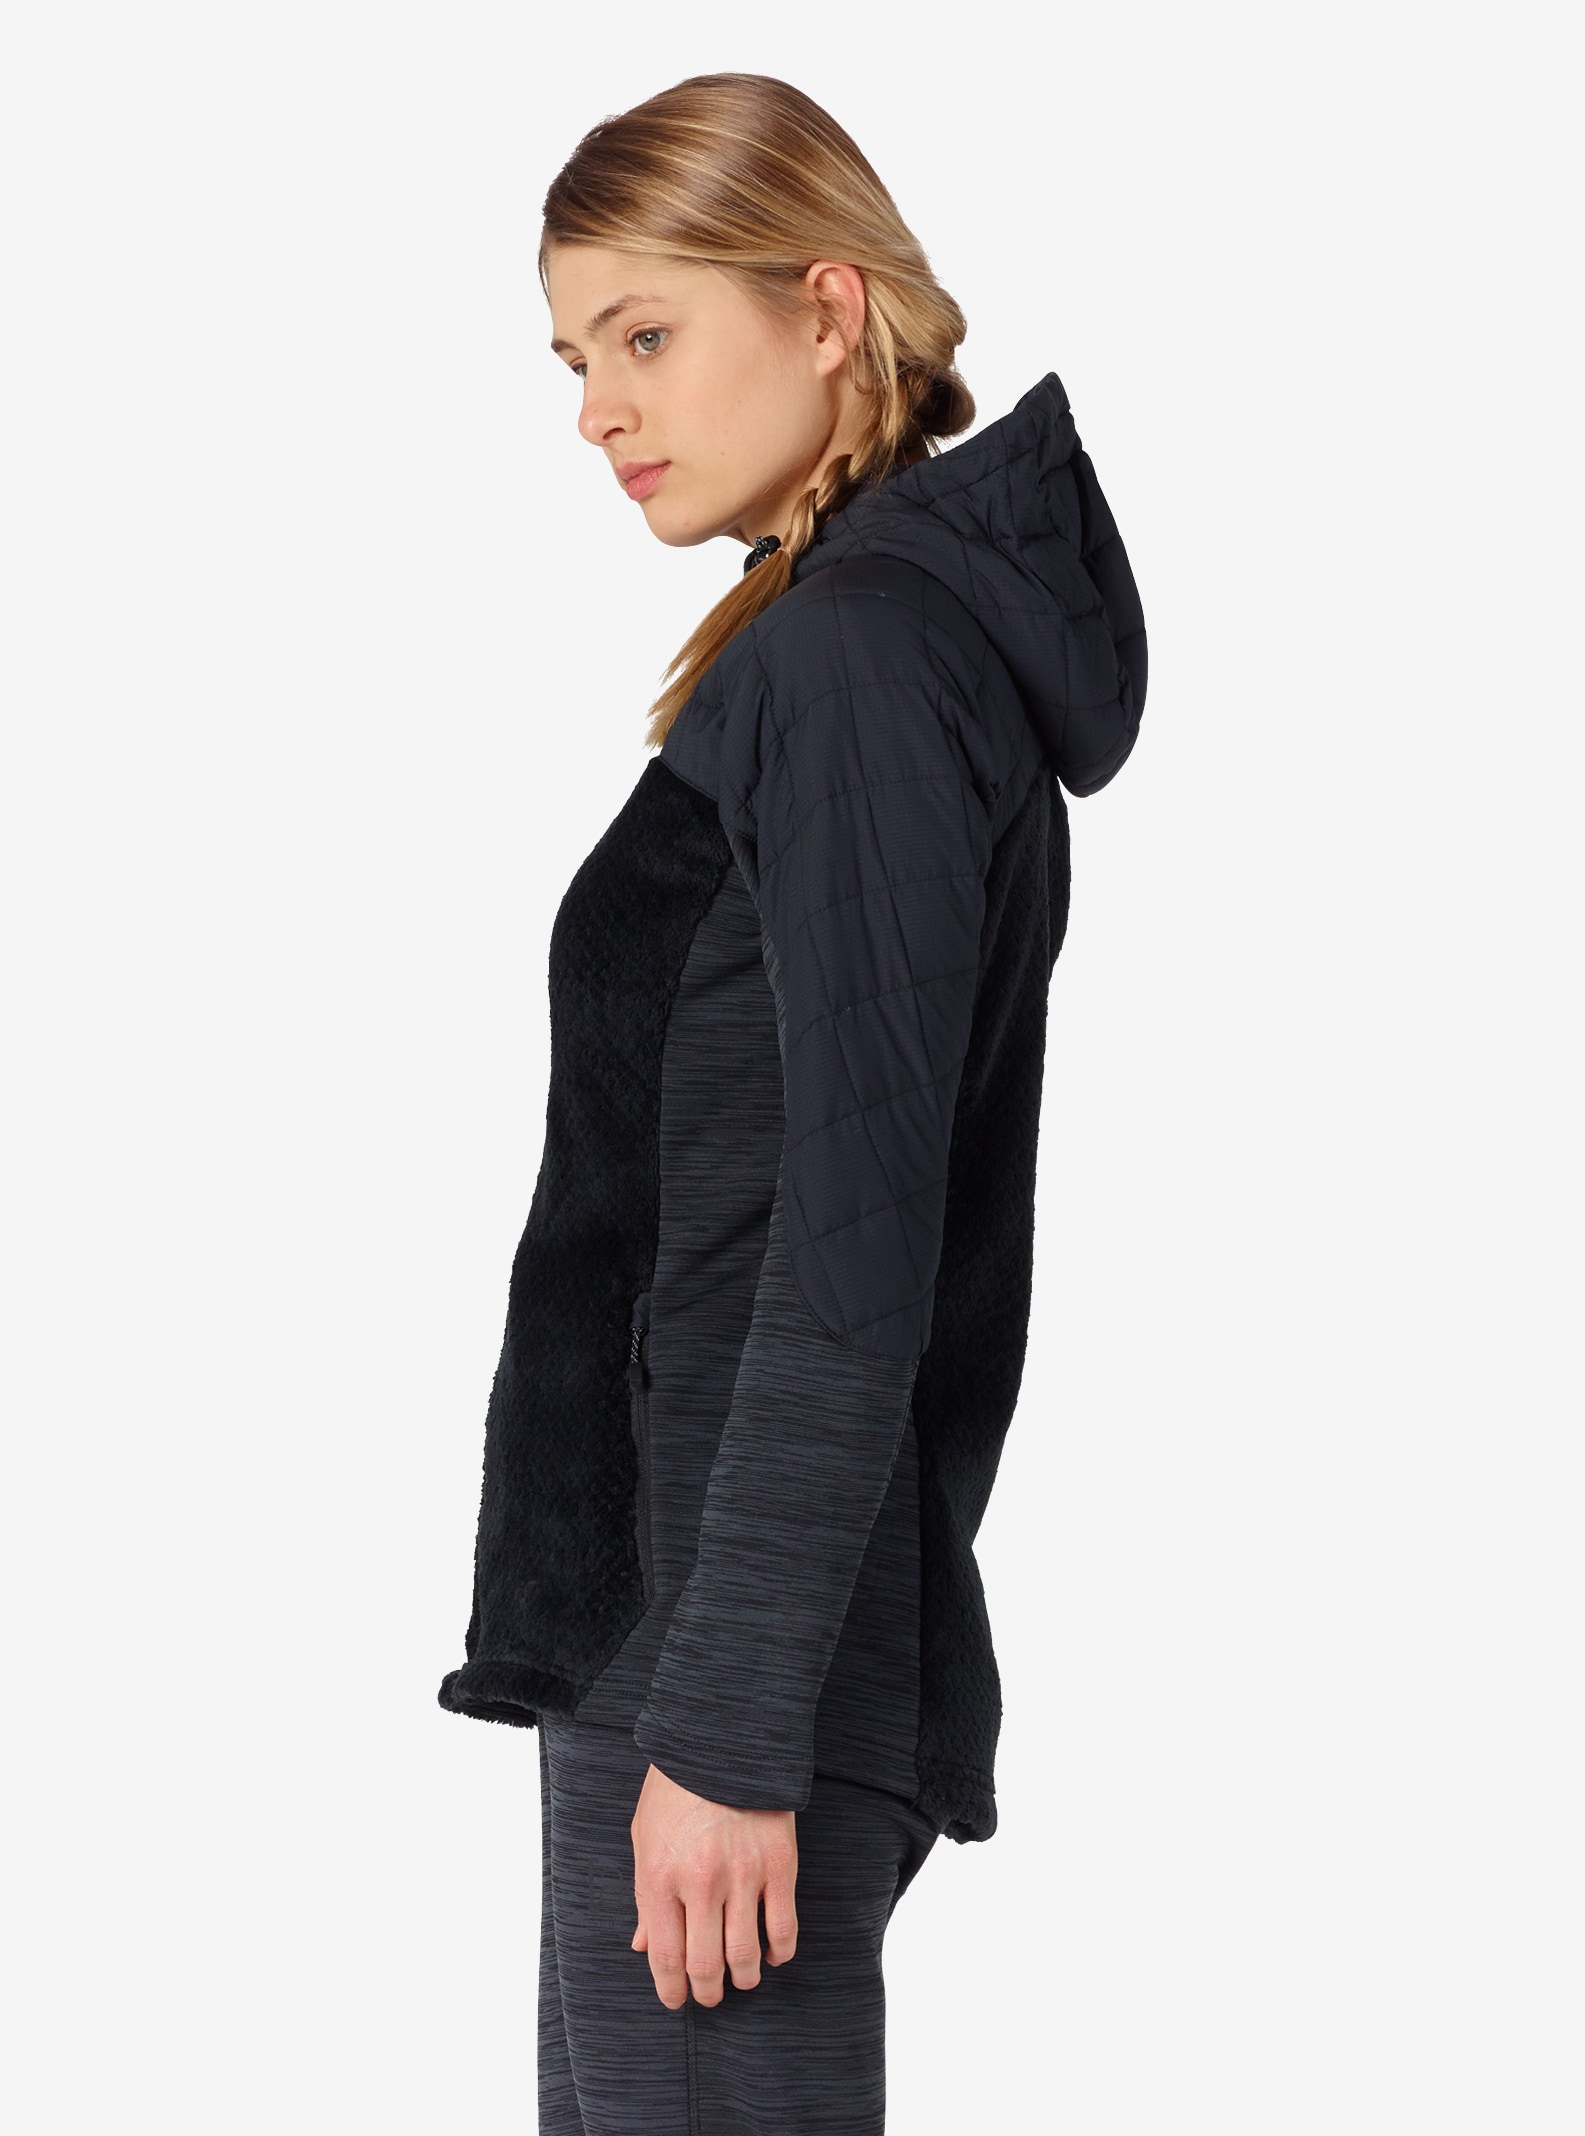 Women's Burton [ak] Zulu Insulator shown in True Black